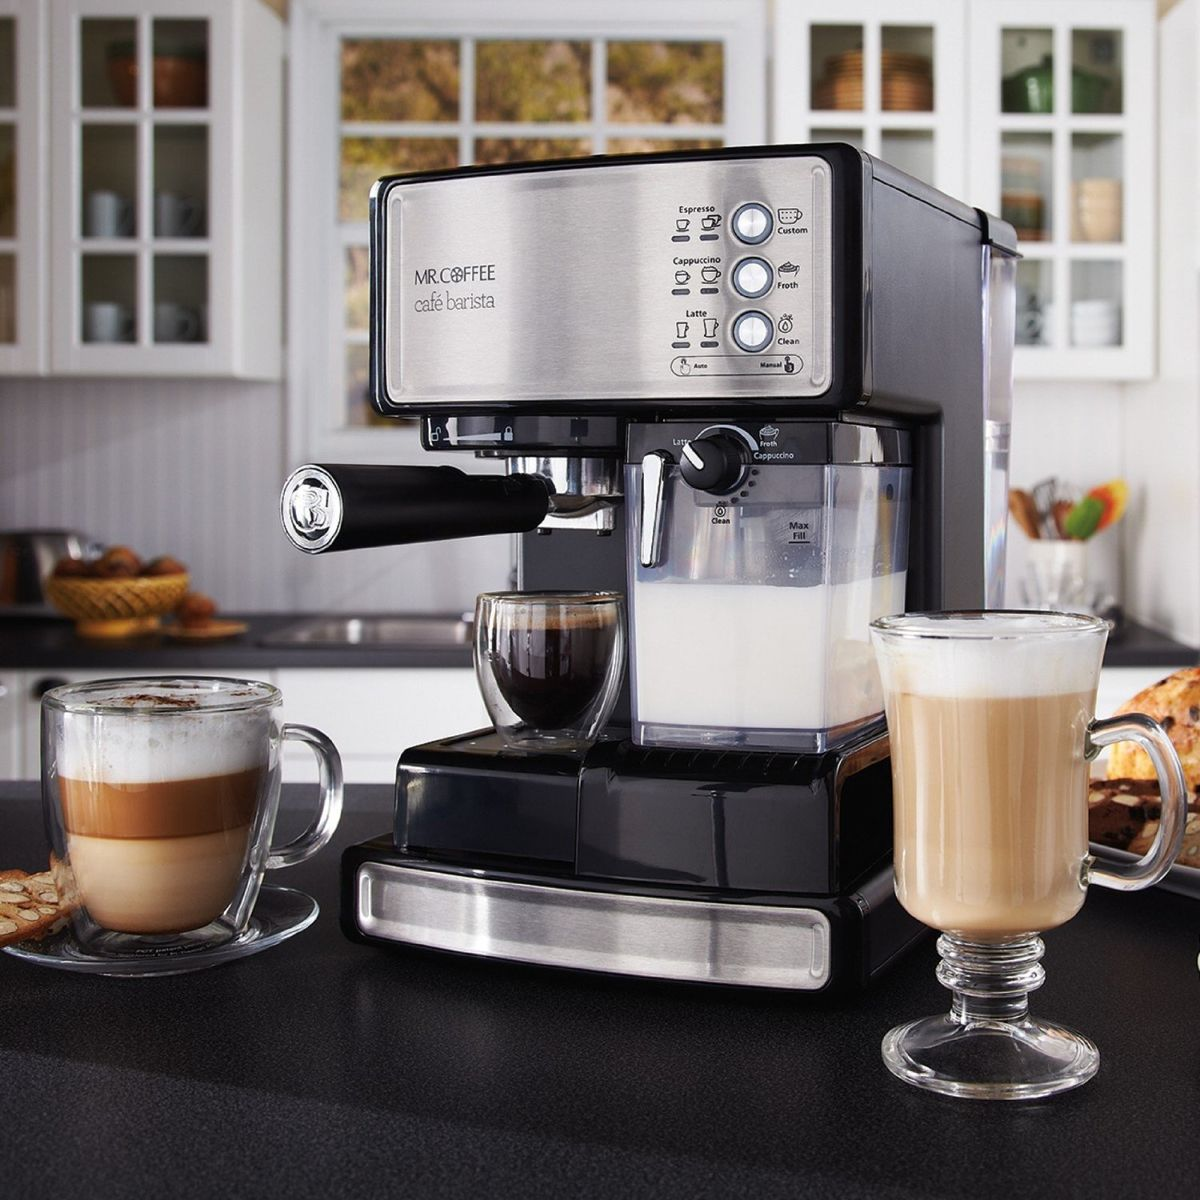 Best-Rated Inexpensive Espresso Machines For Home Use ...